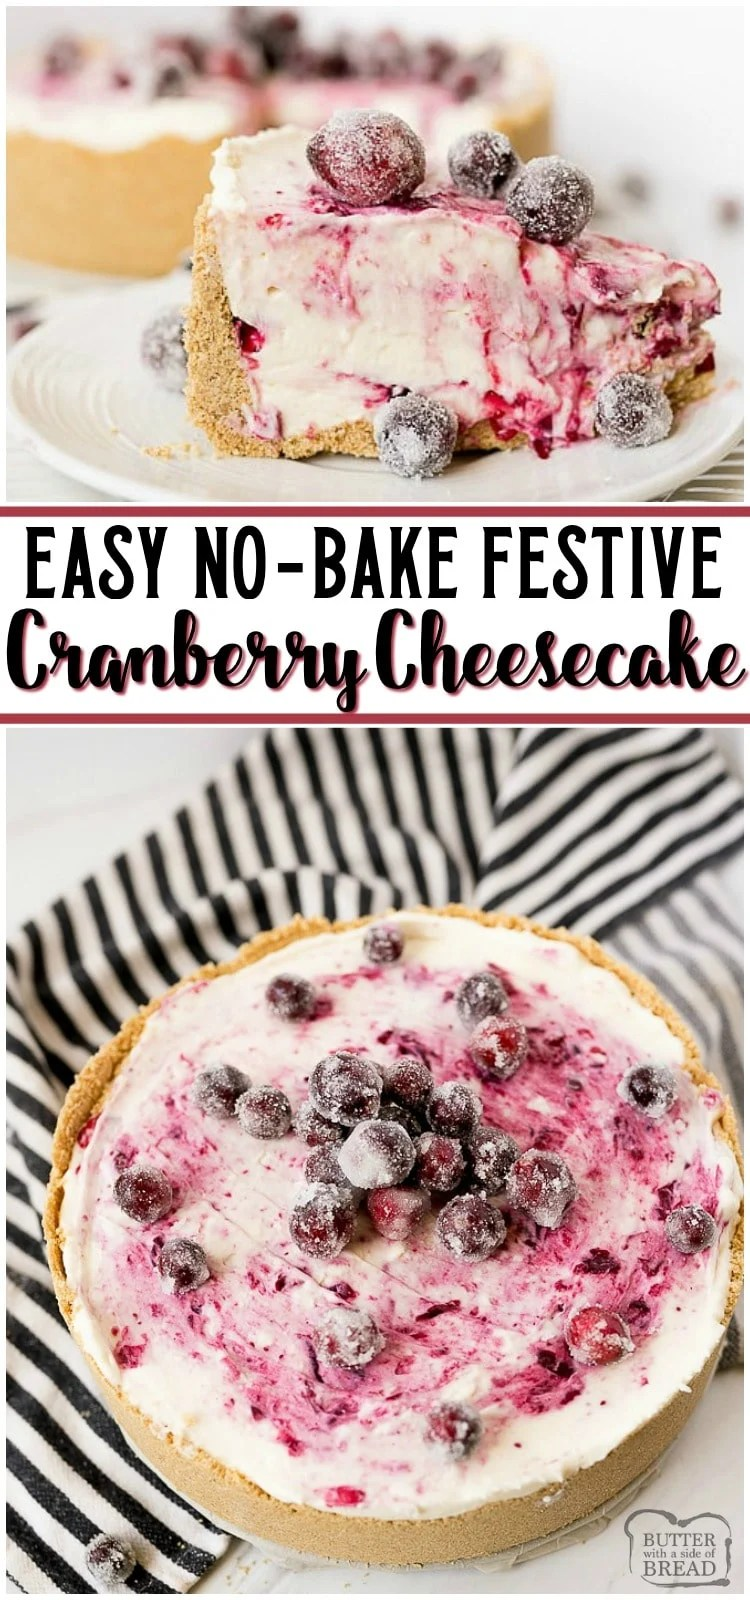 Cranberry Cheesecake Recipe has a fresh cranberry swirl and sugared cranberries as garnish! Easy 4-ingredient NO-BAKE cheesecake filling that's perfect for beginners.